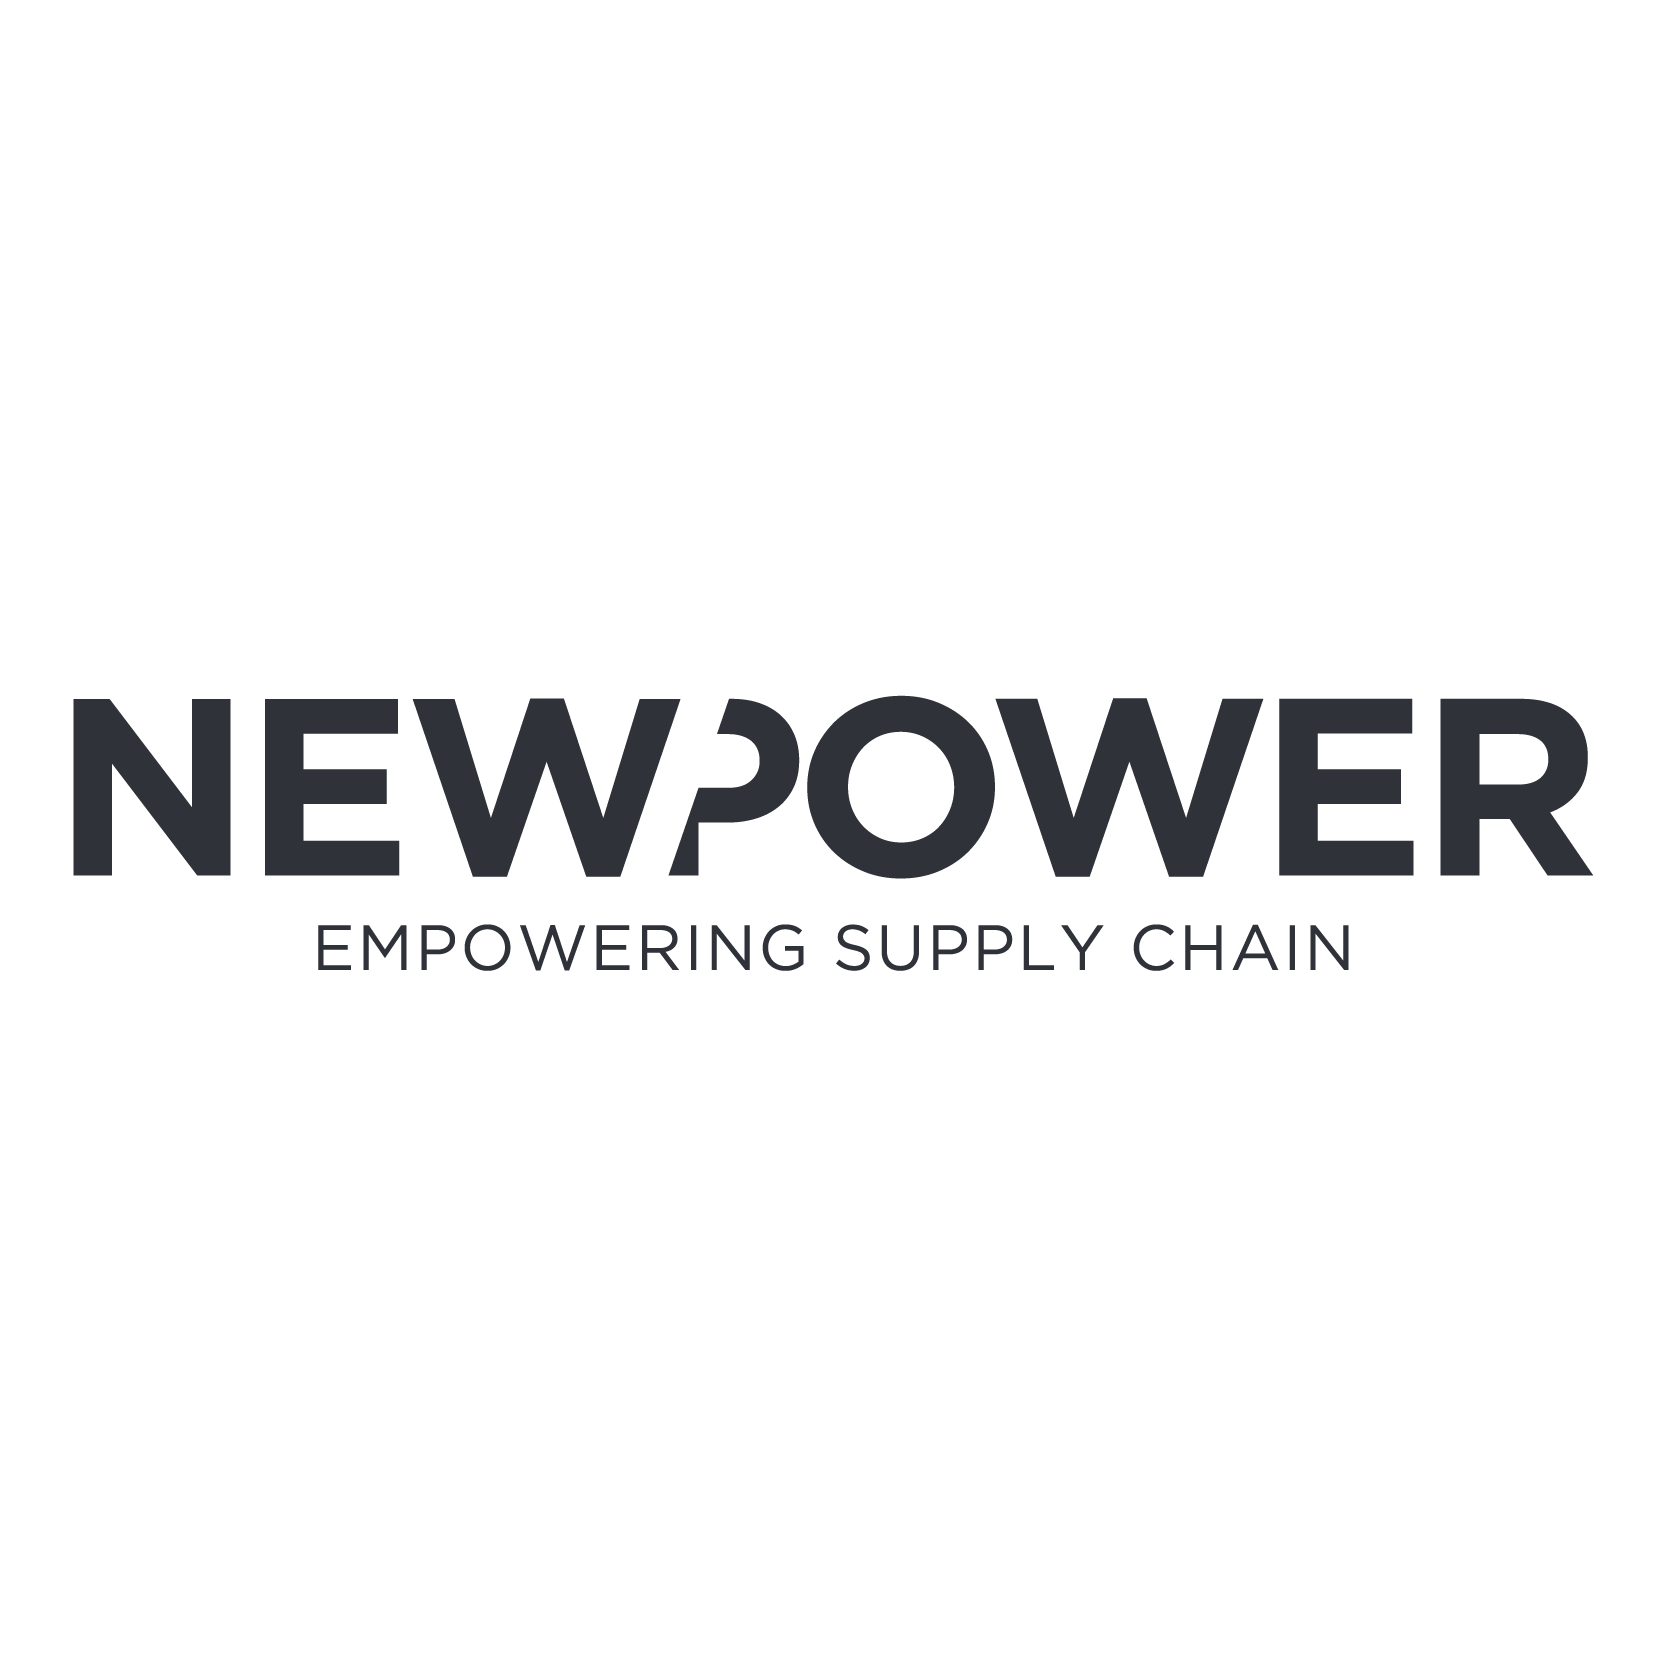 _all_logos_img-newpower-logo.png